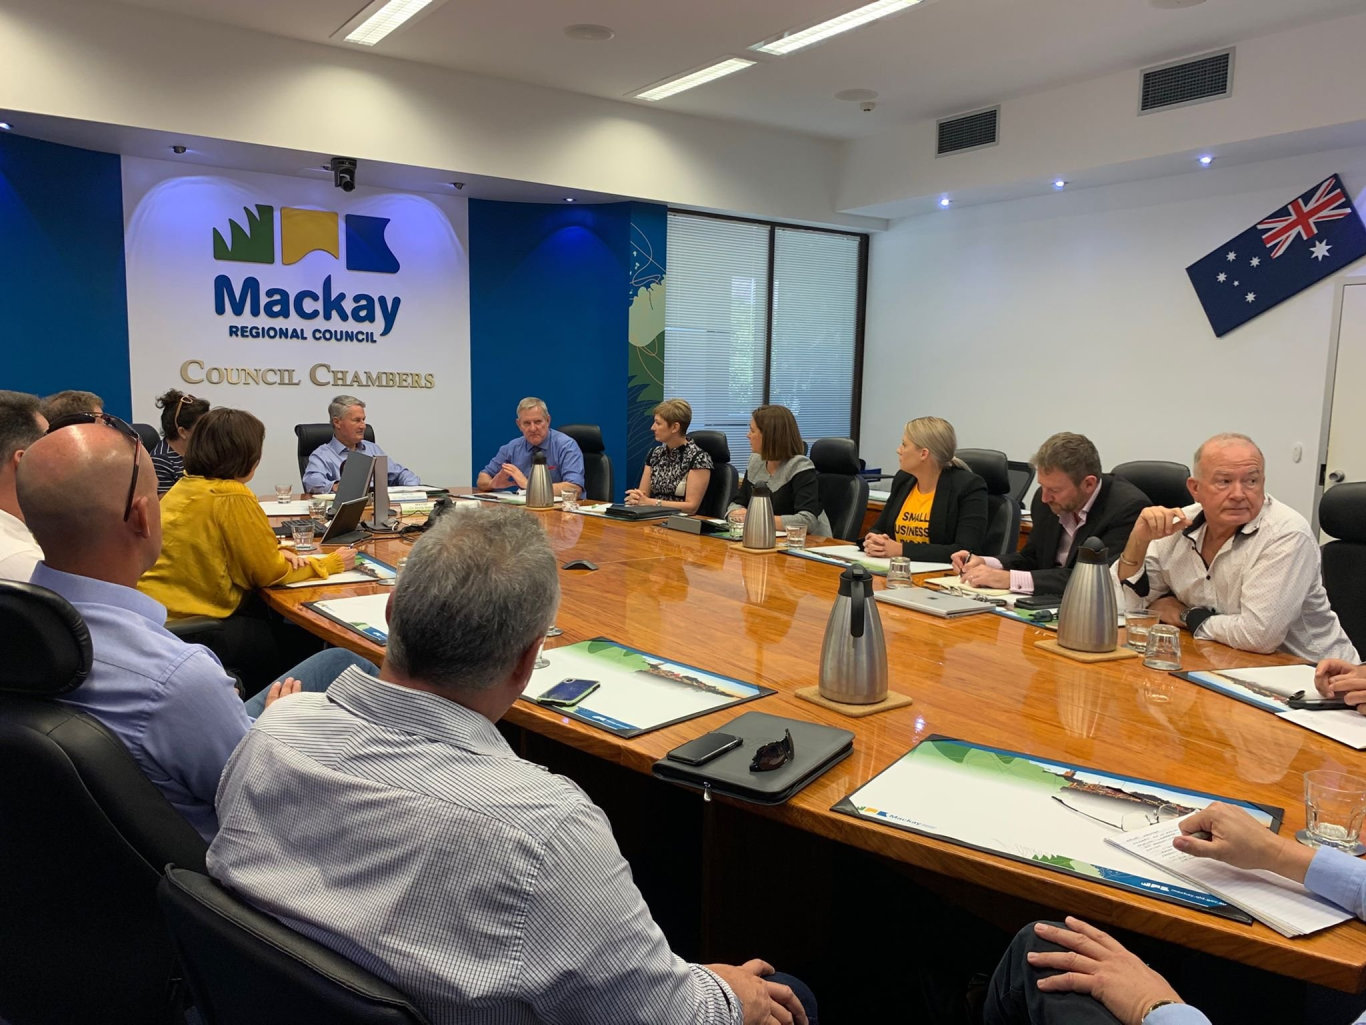 Fair go for our region roundtable held in Mackay.